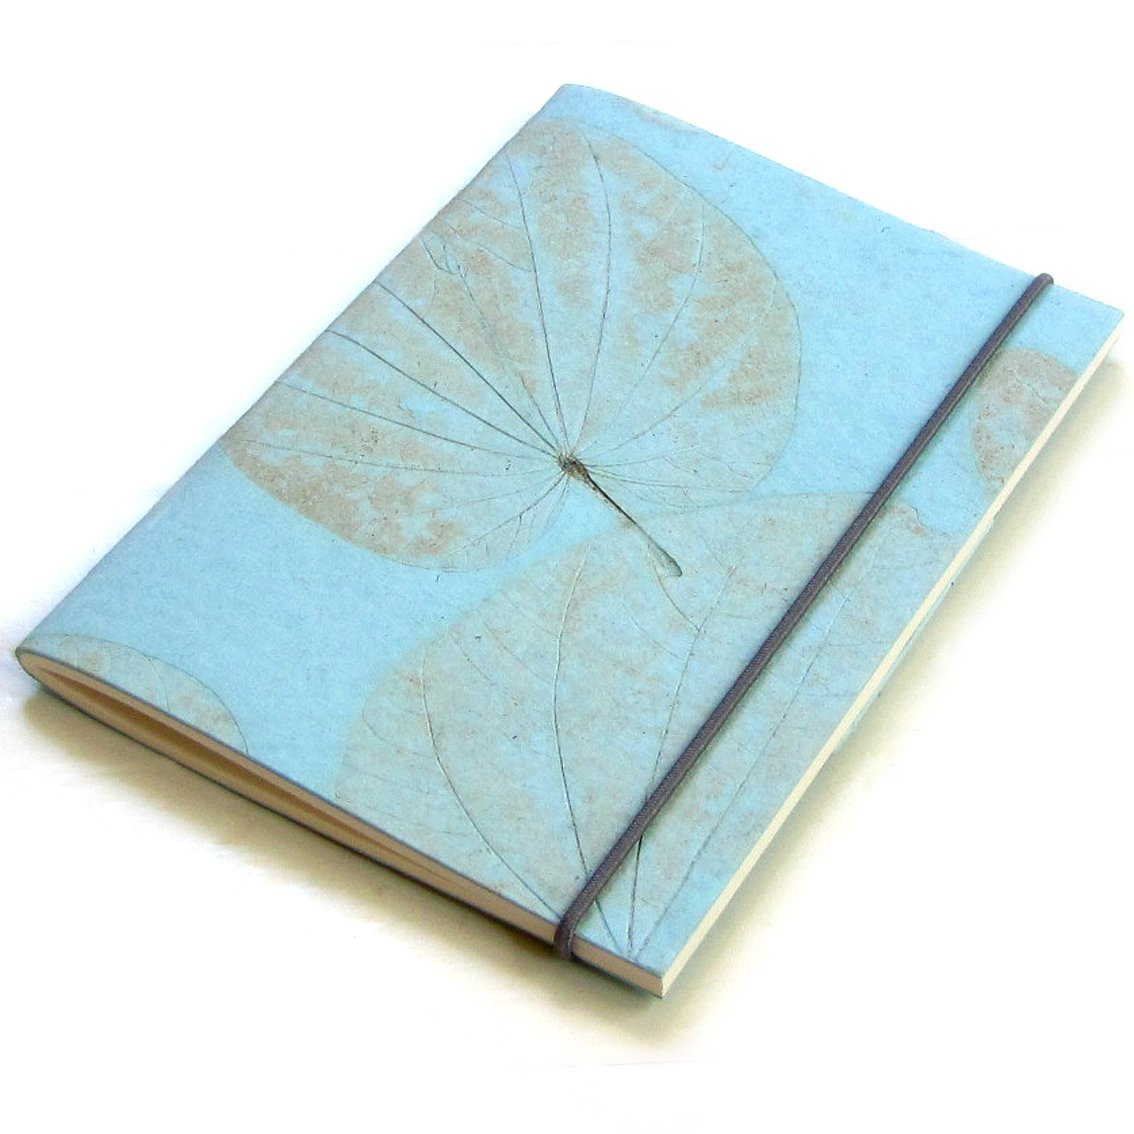 Handmade journal recycled heart leaf paper light blue sketching 5x7 40pp handmade stationery